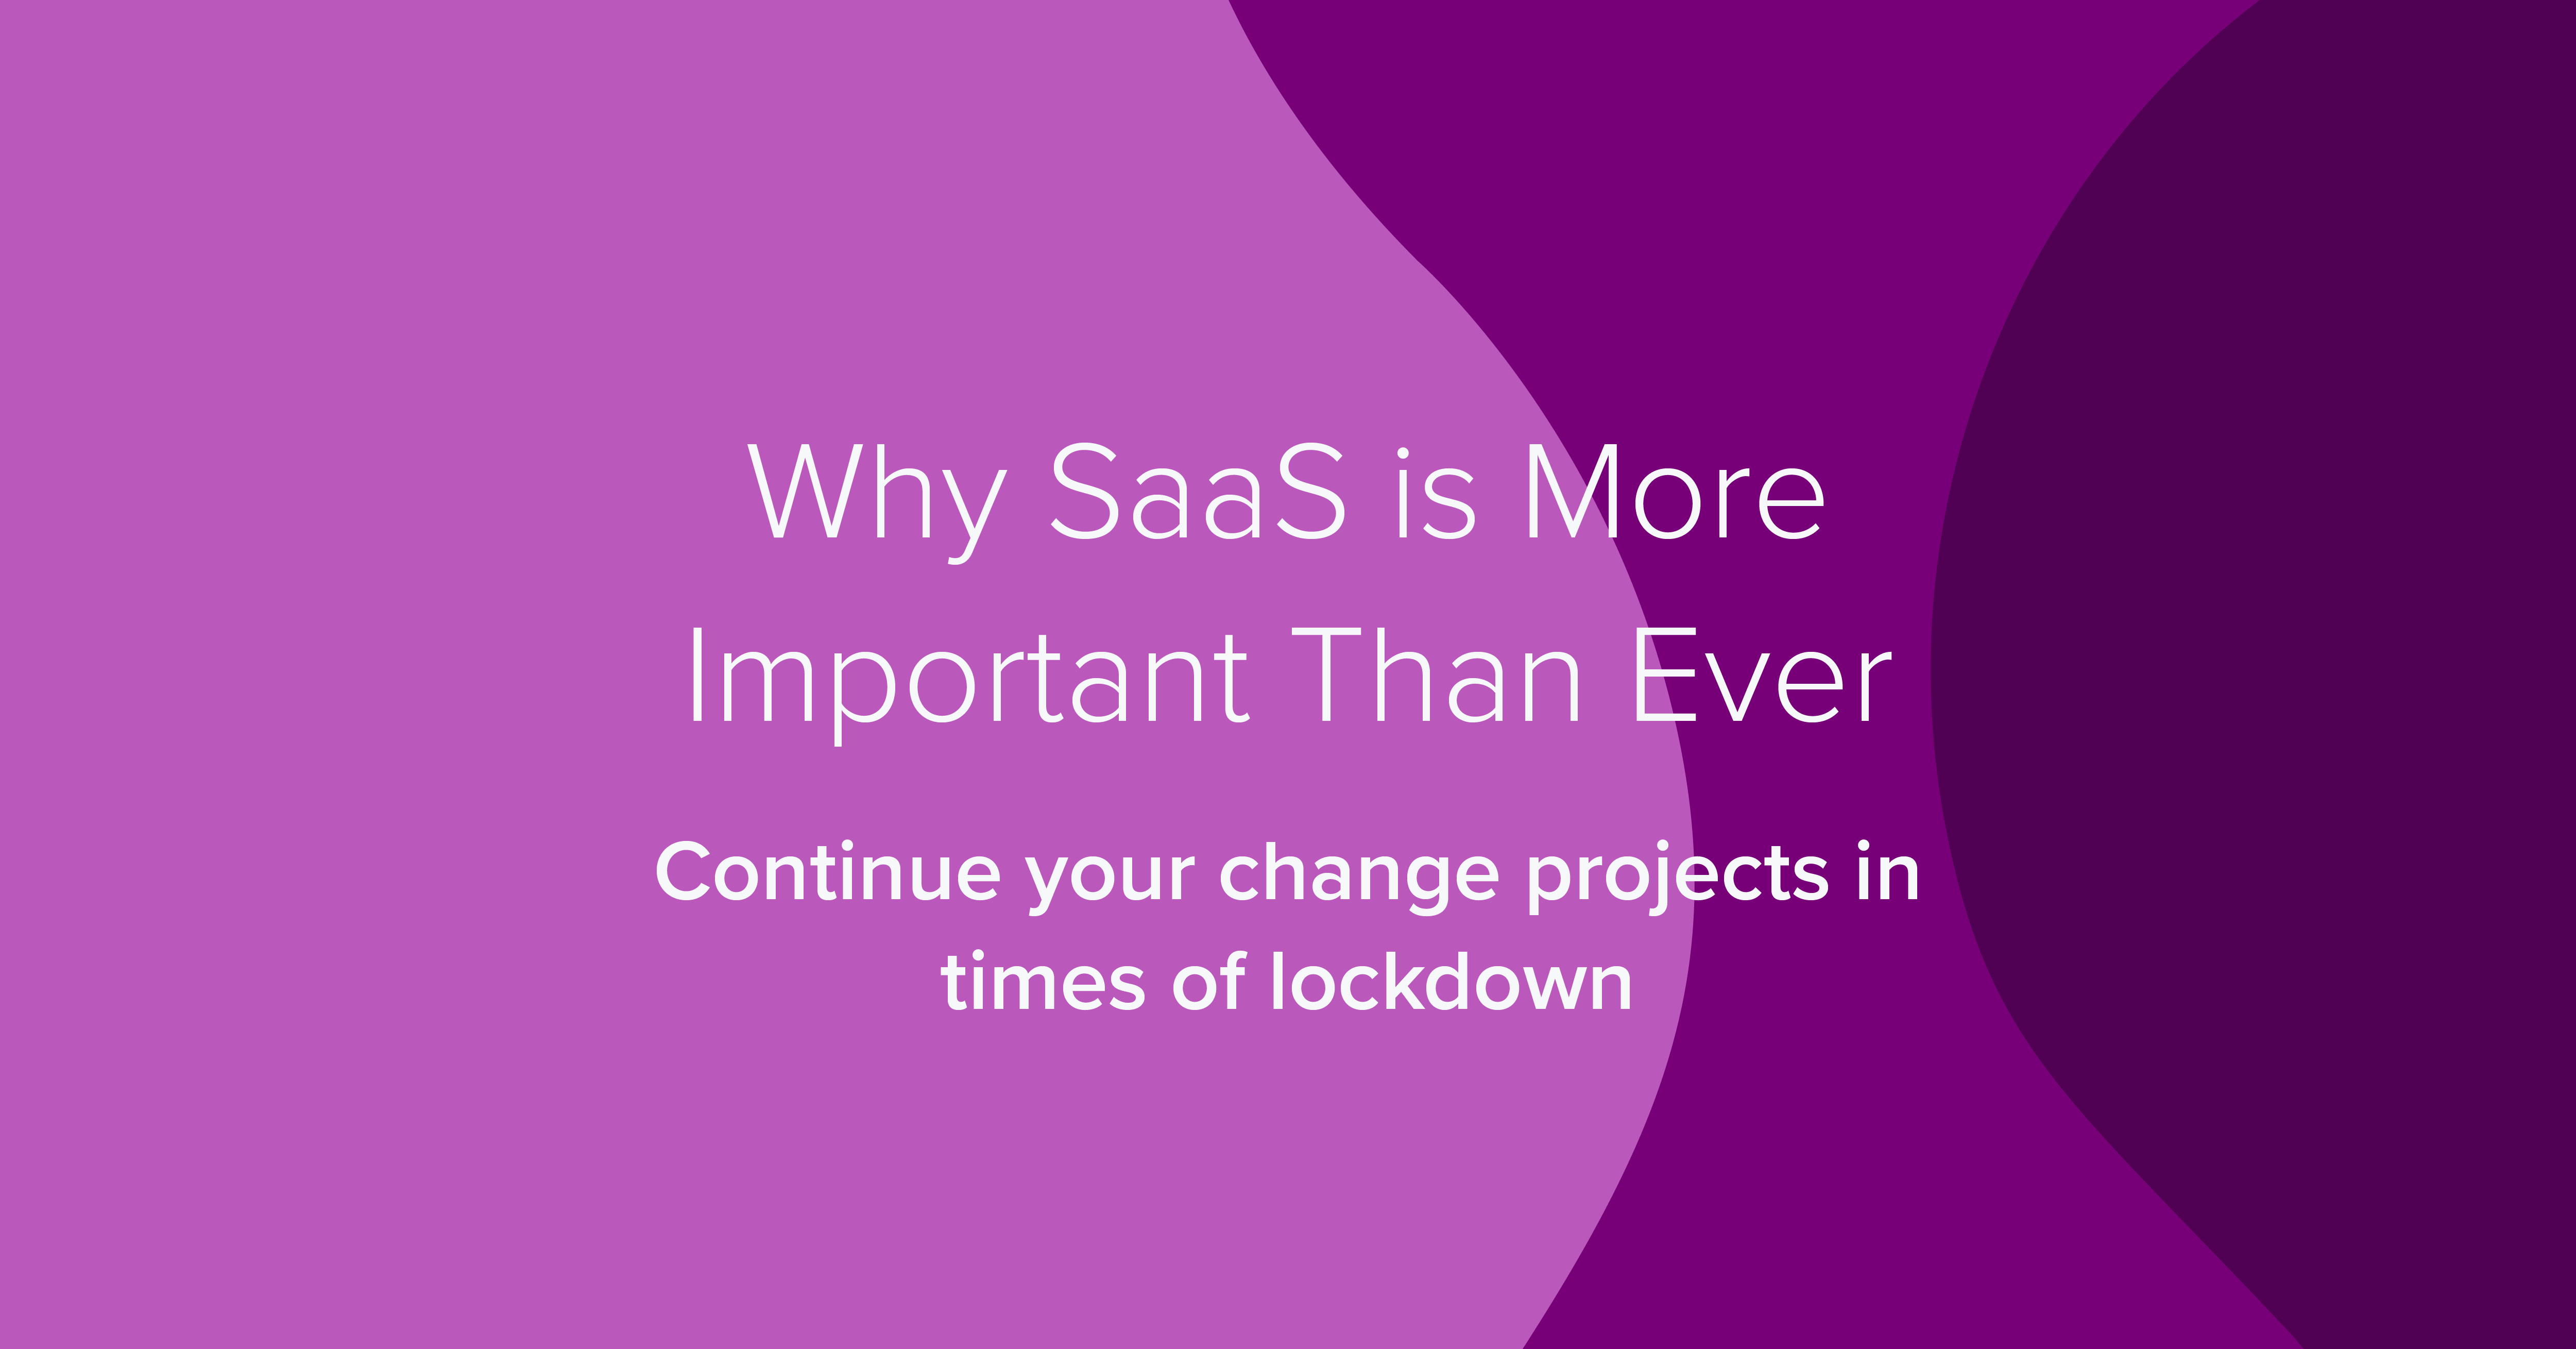 Why SaaS Is More Important Than Ever